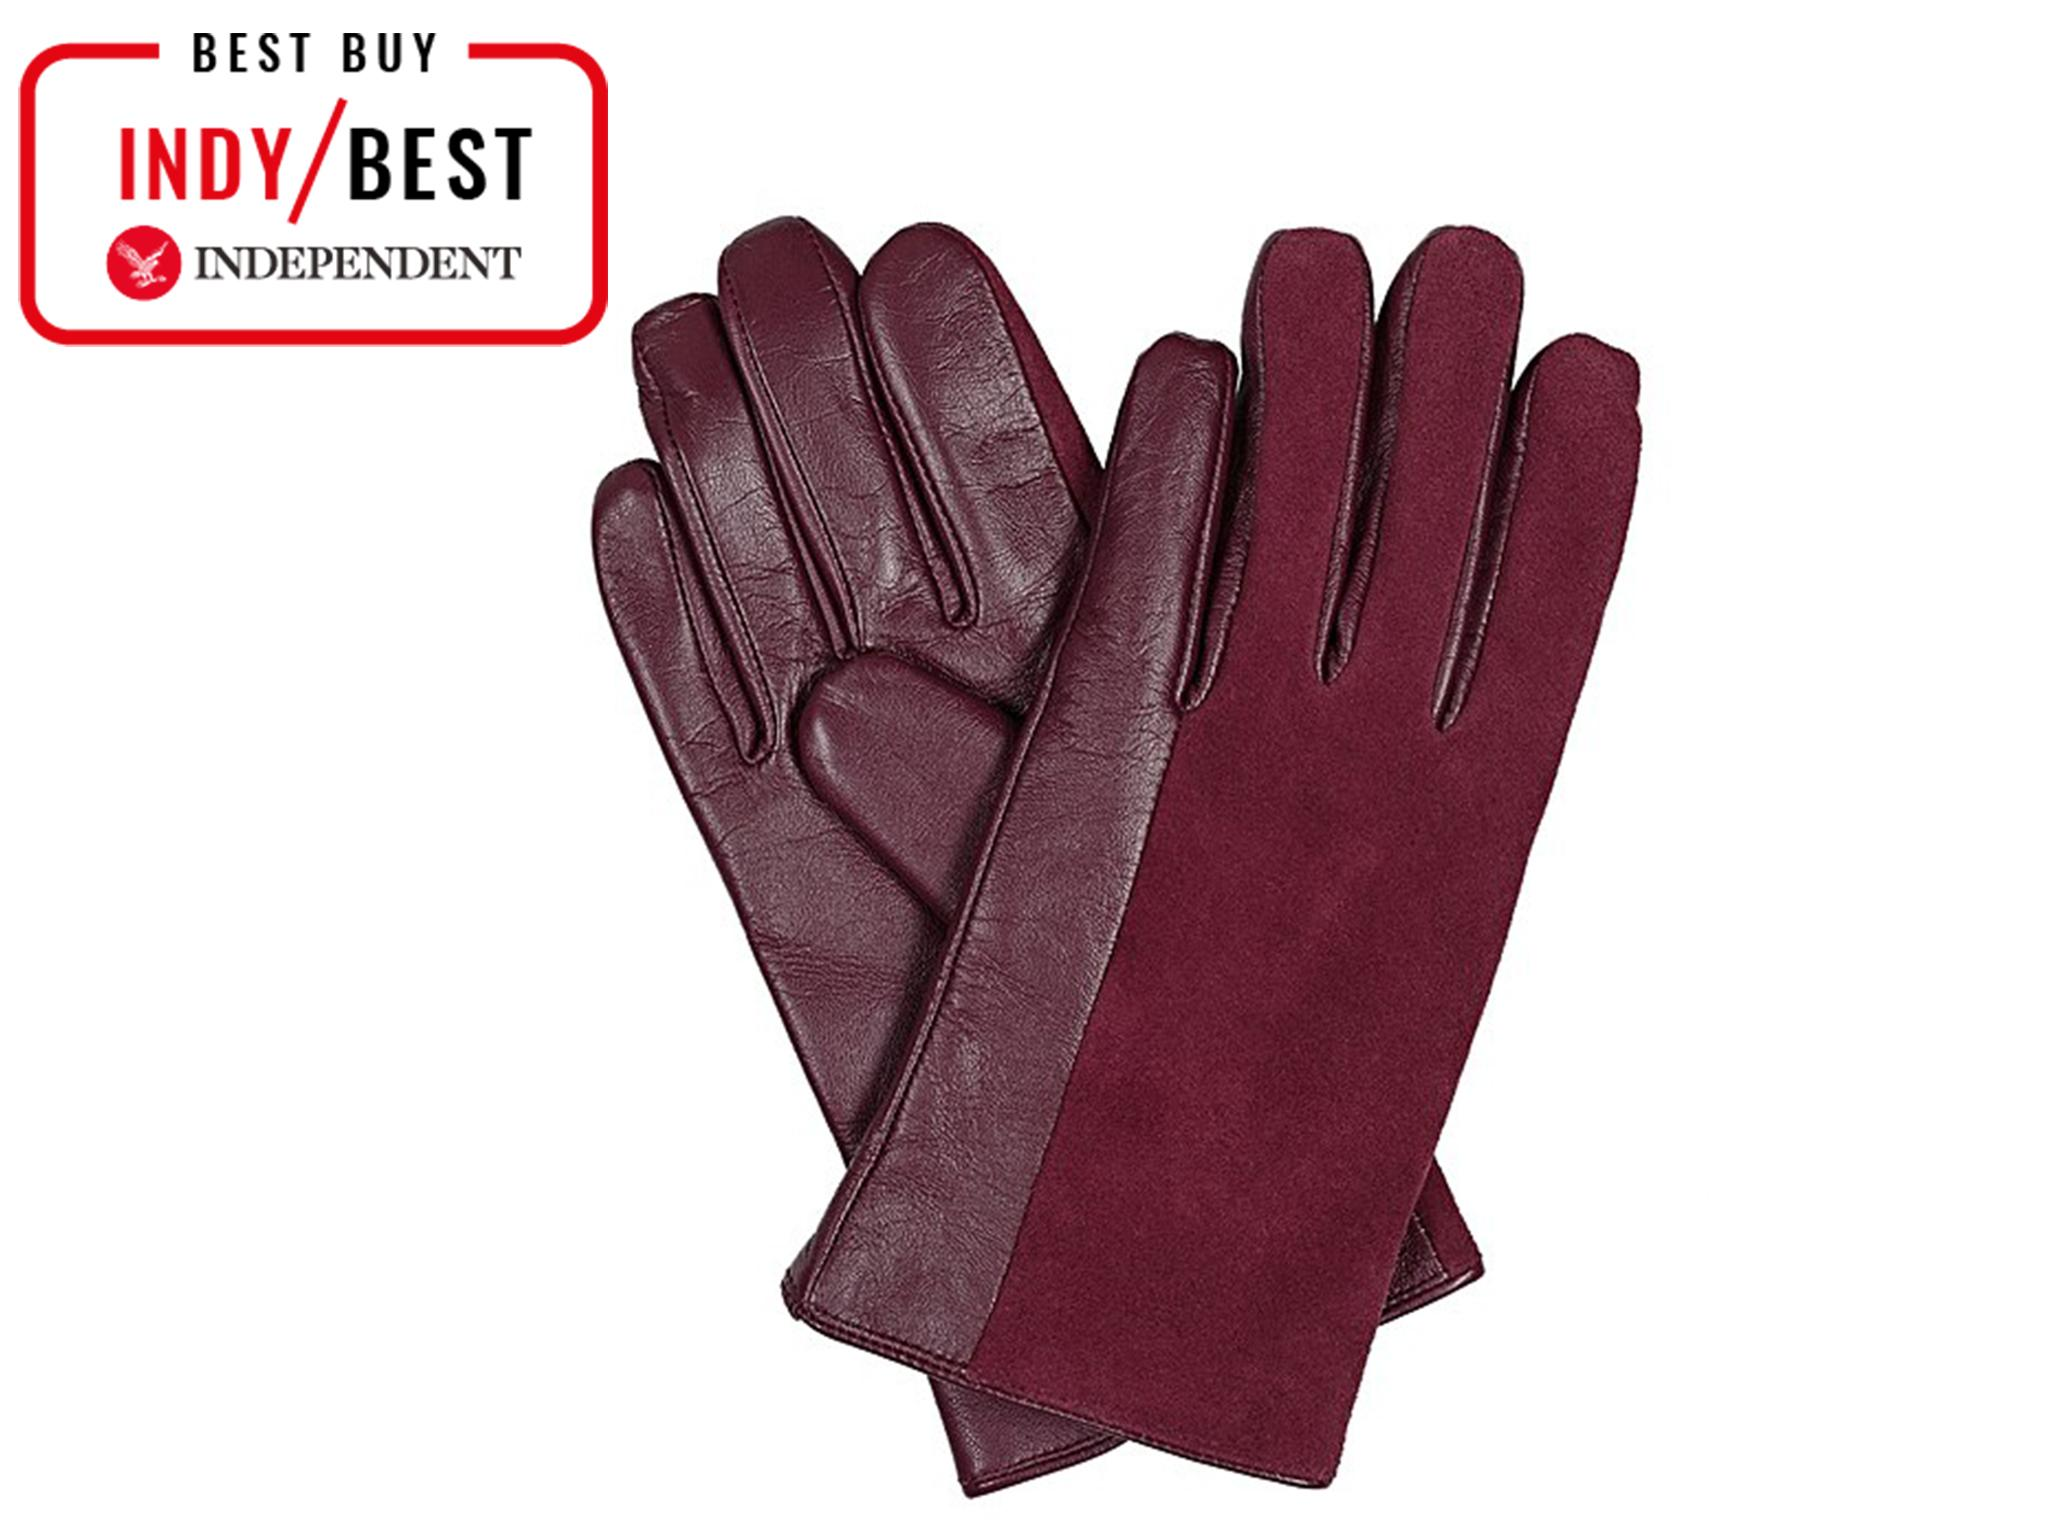 94e16bd46 10 best women's gloves and wrist warmers for winter 2018 | The ...